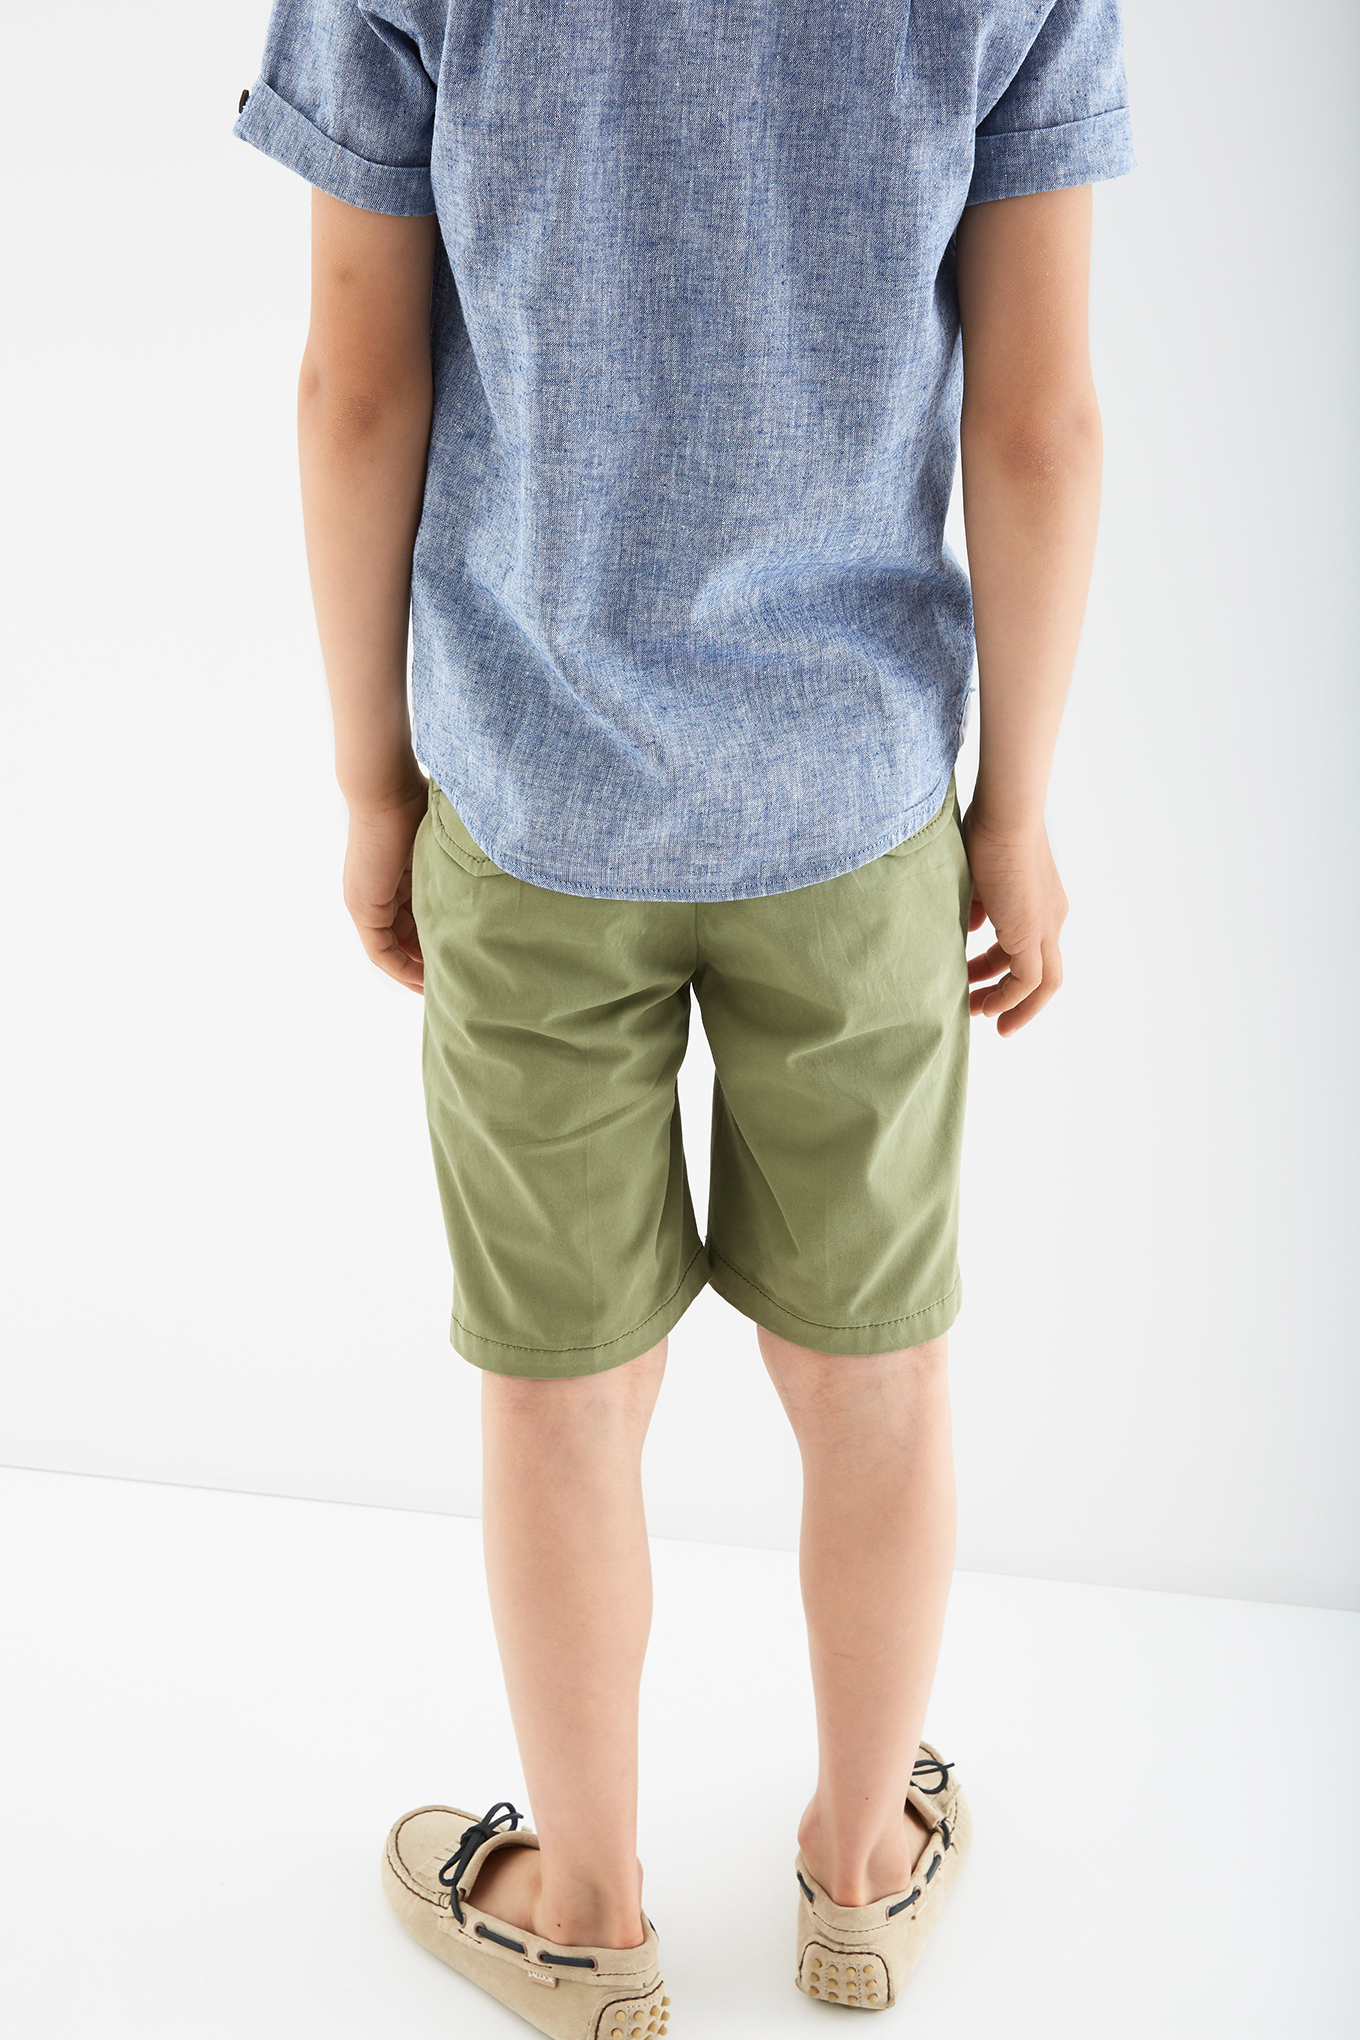 Bermuda Green Casual Boy